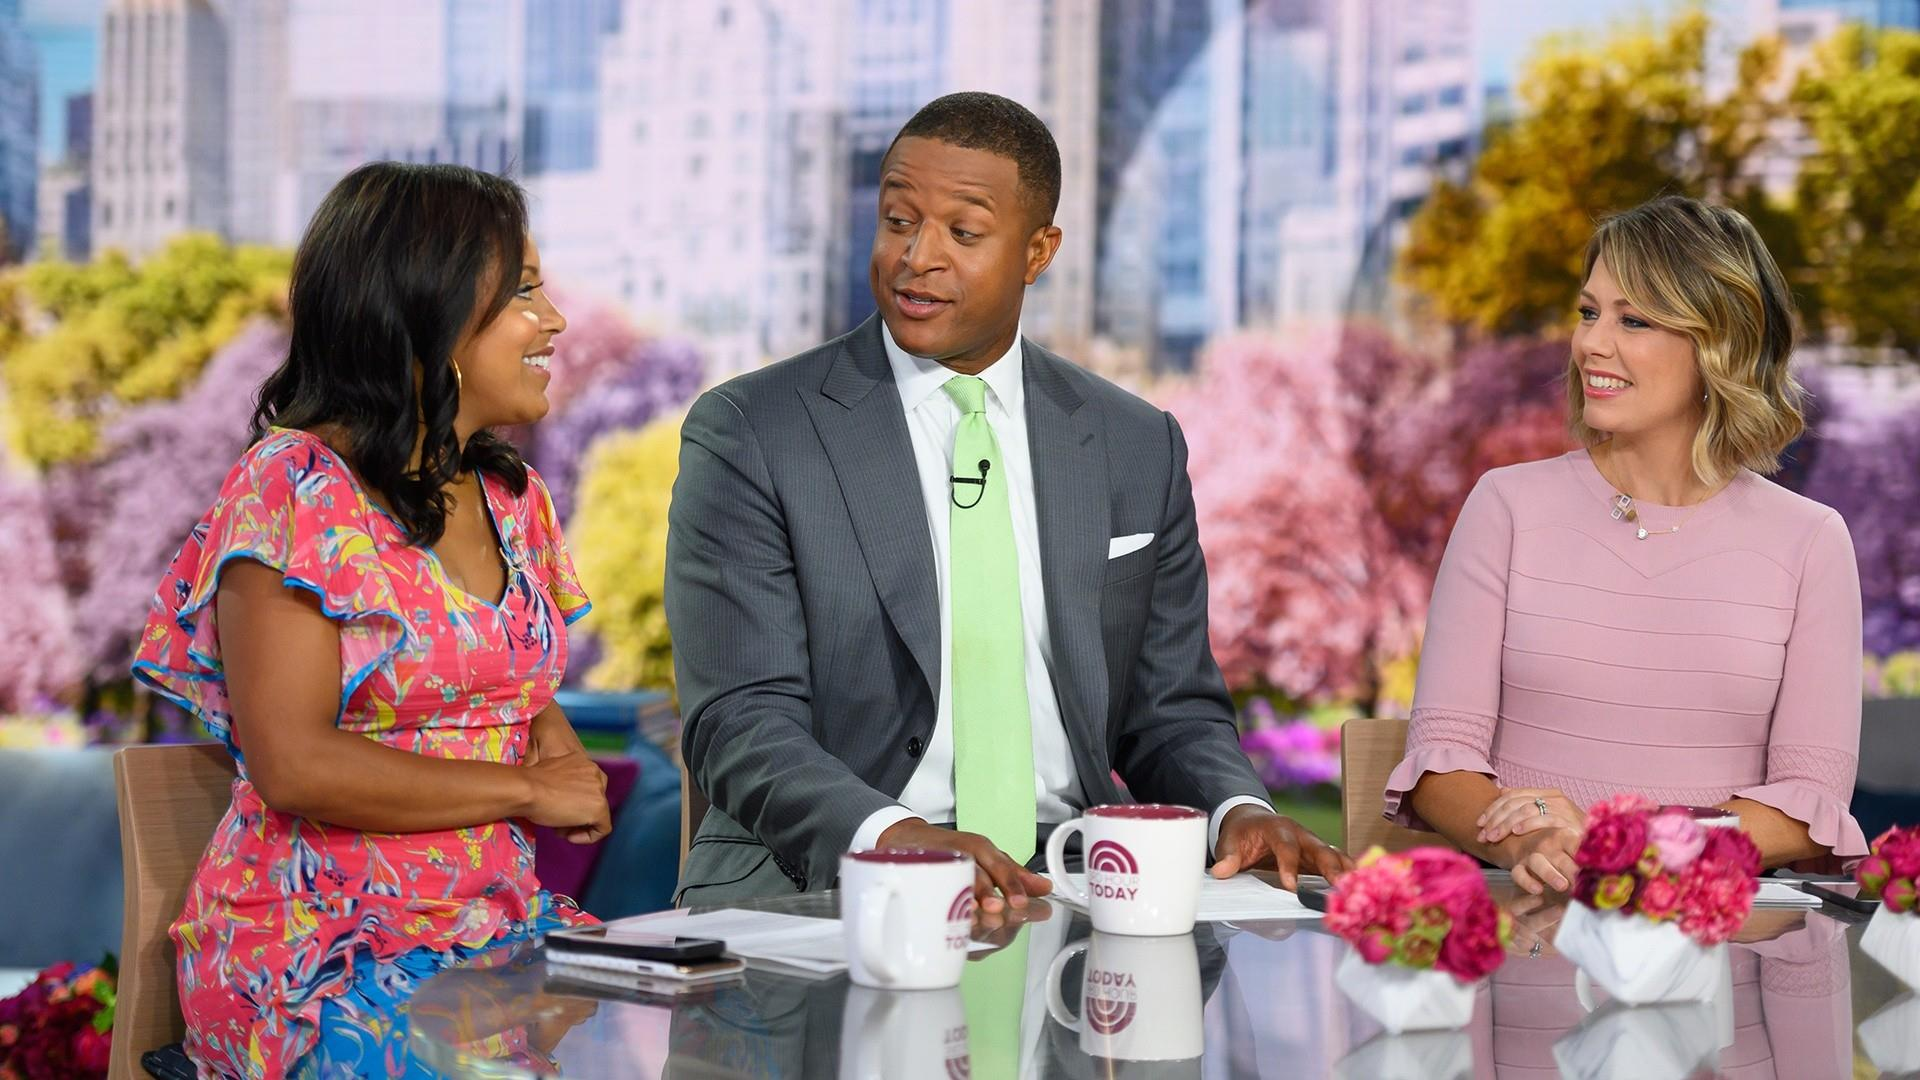 TODAY anchors share why family dinner is so important